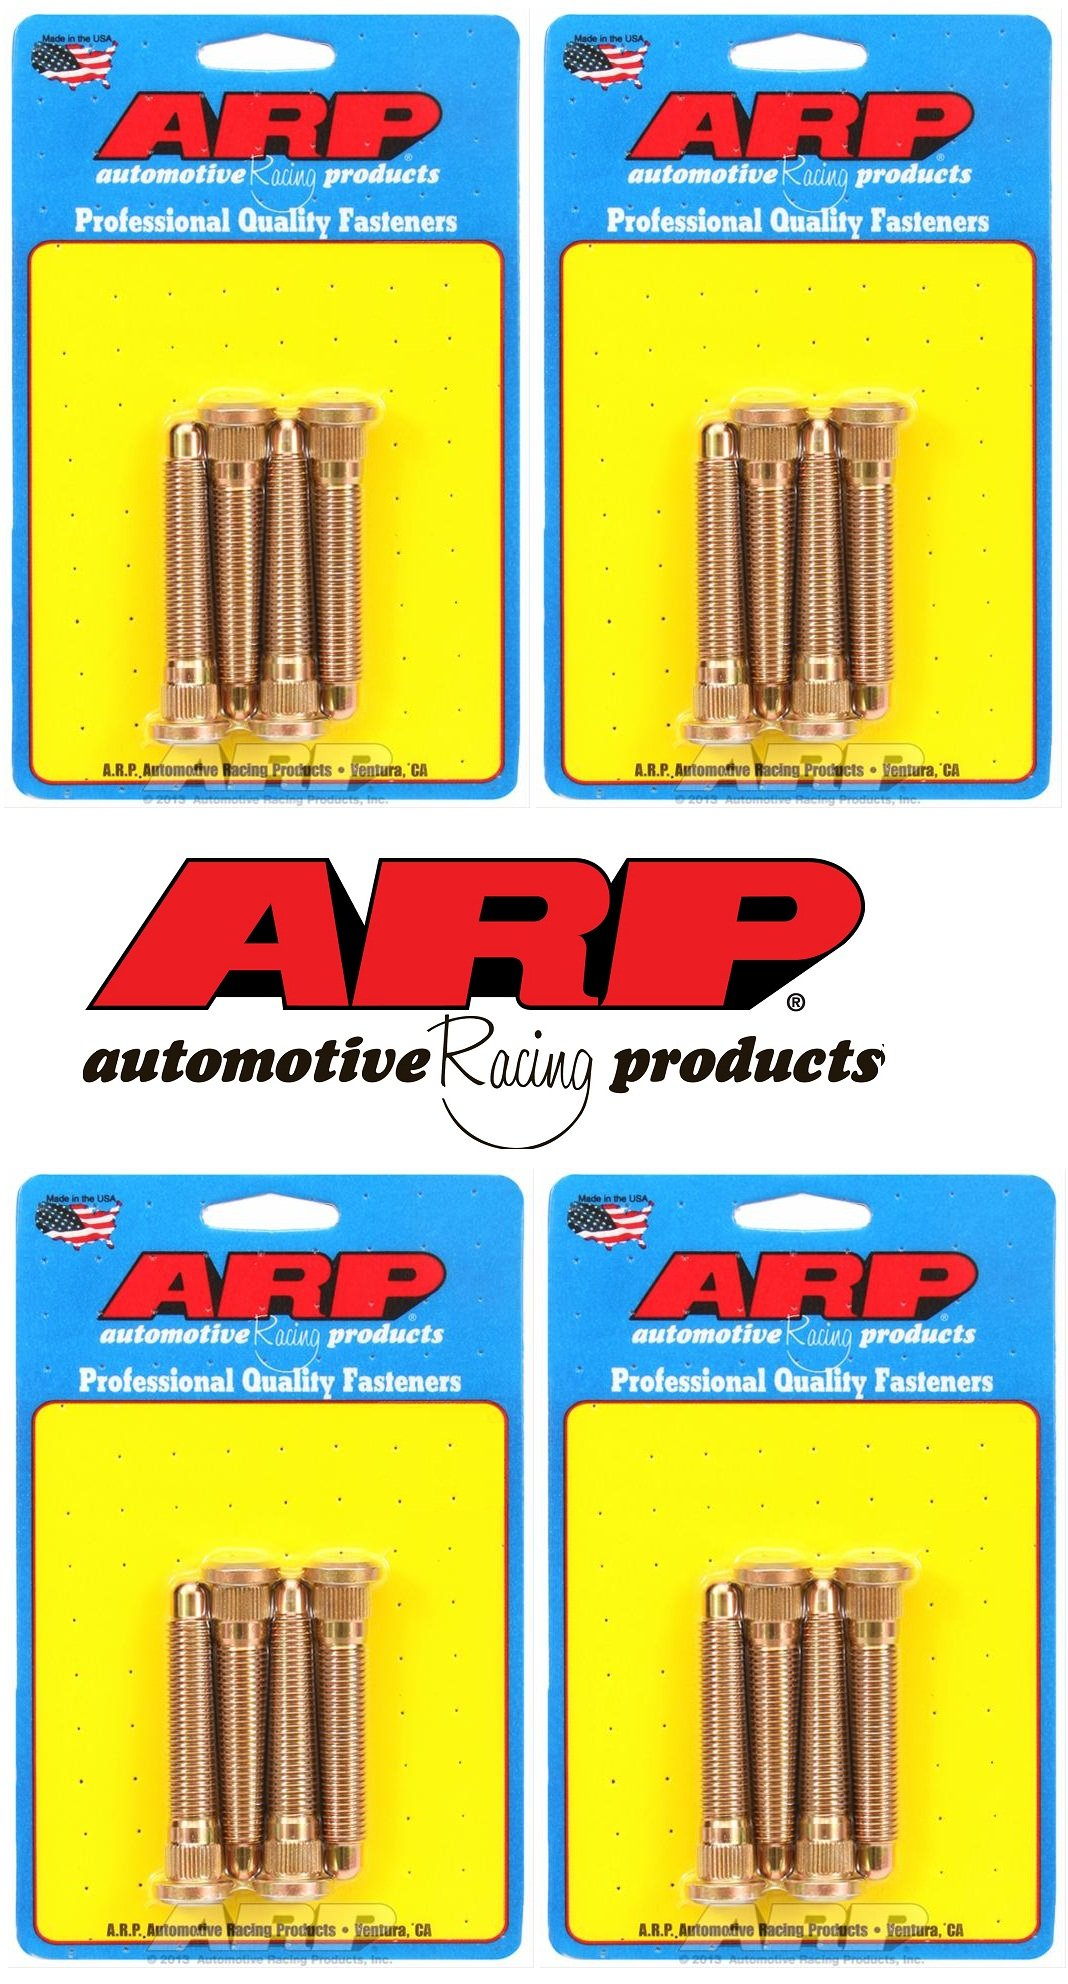 ARP Wheel Stud Kit For 1990-1993 Mazda Miata M12 x 1.5 - Front & Rear (Set of 16) by ARP (Image #1)